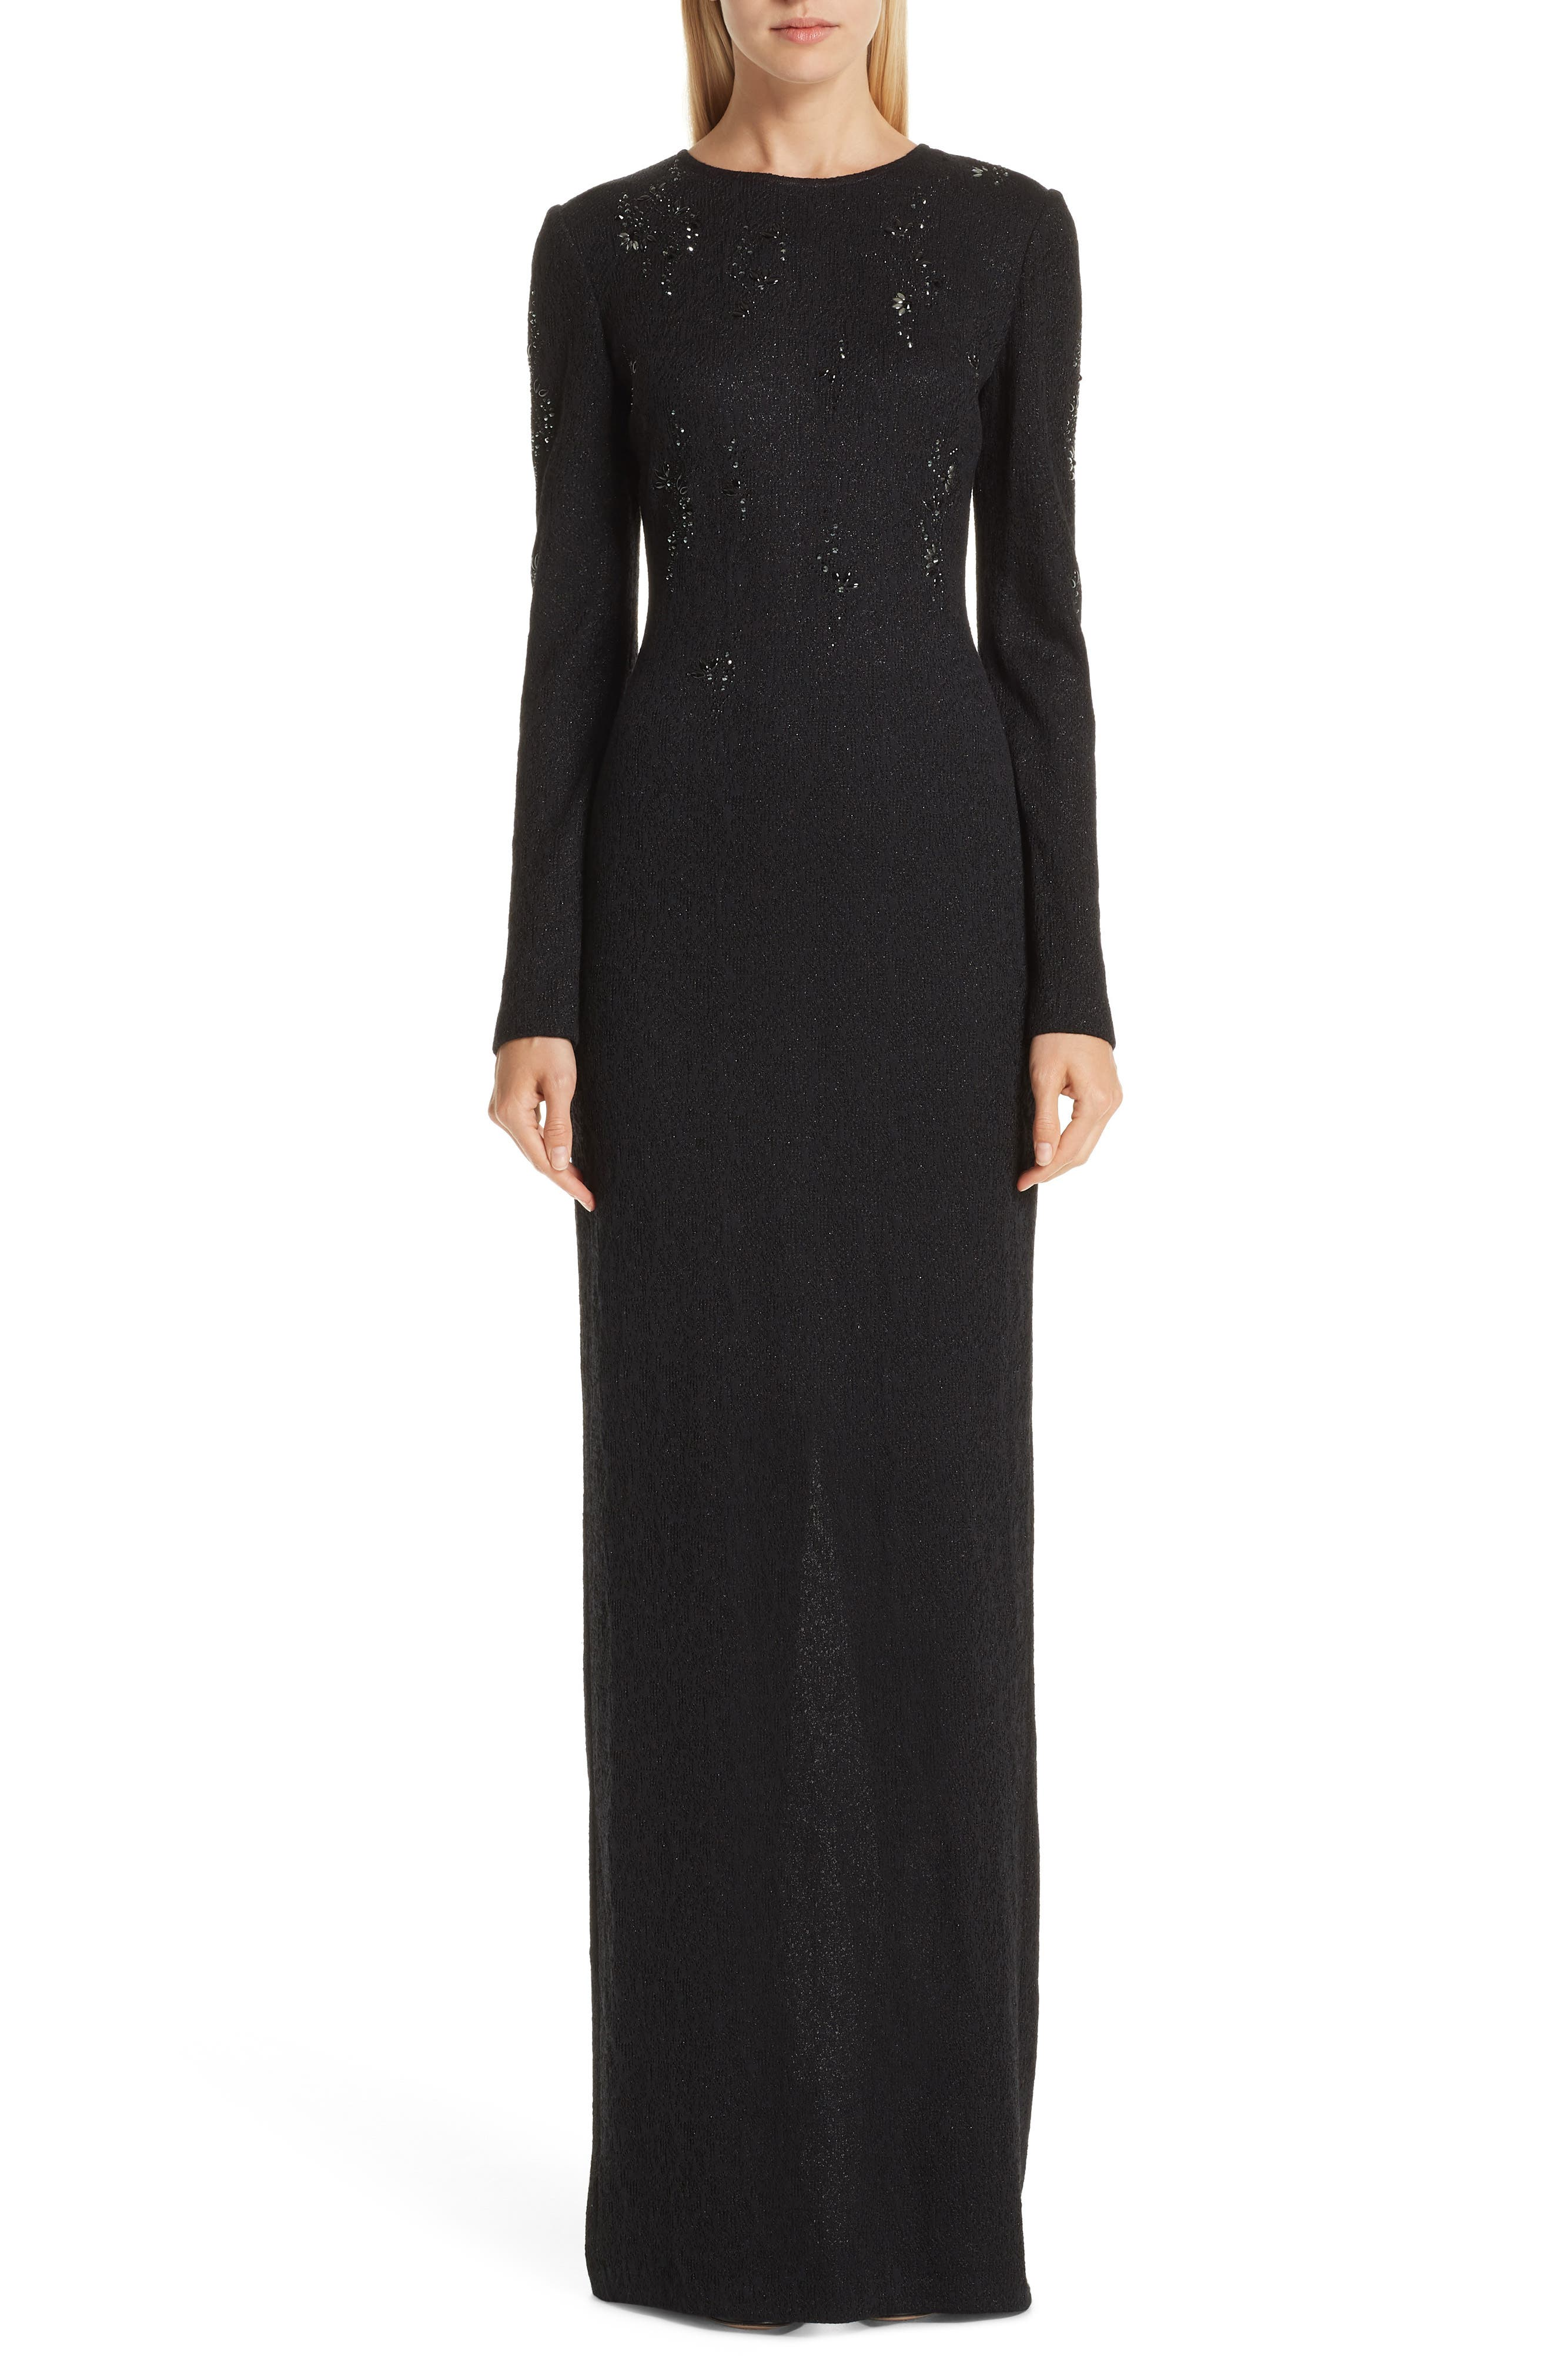 St. John Collection Lace Overlay Jacquard Knit Gown